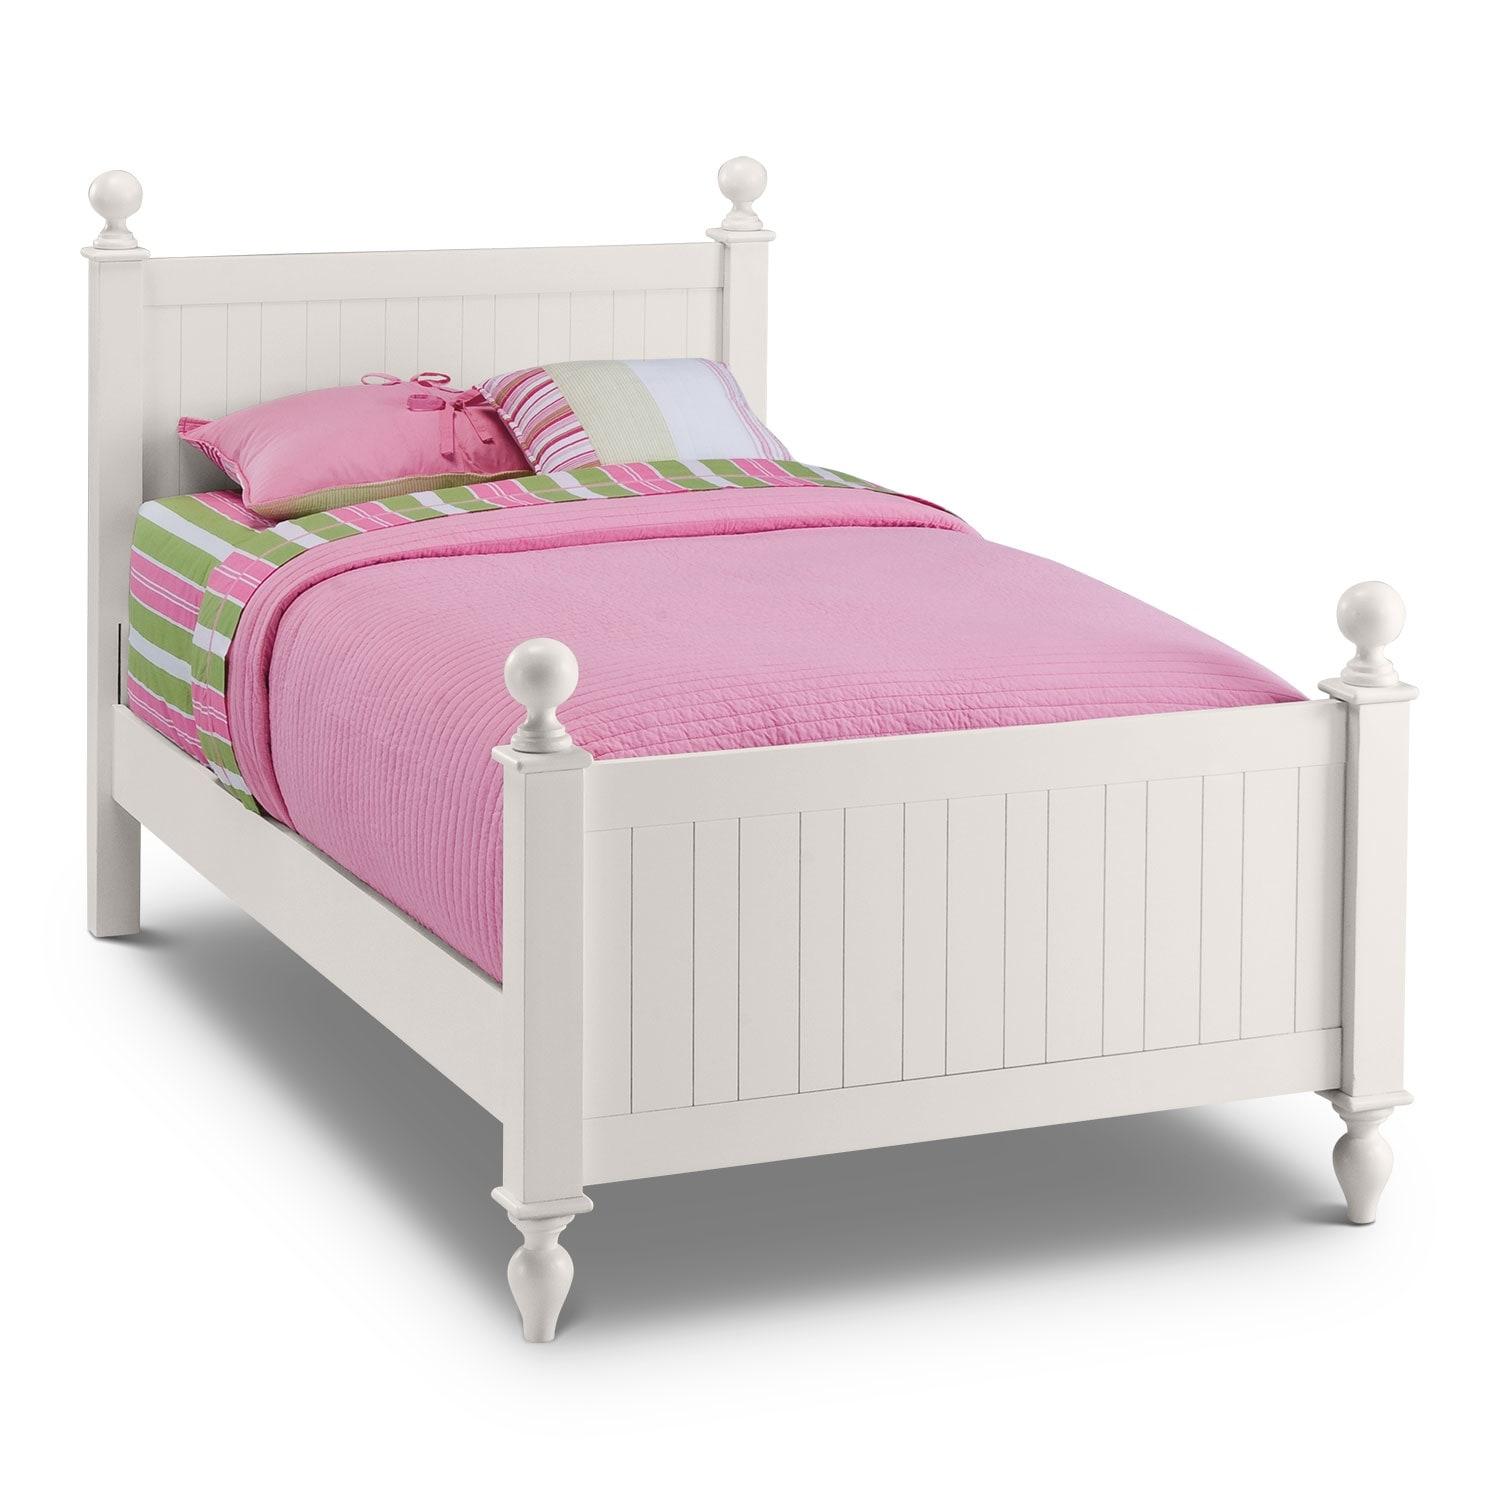 Kids Furniture - Colorworks Twin Bed - White